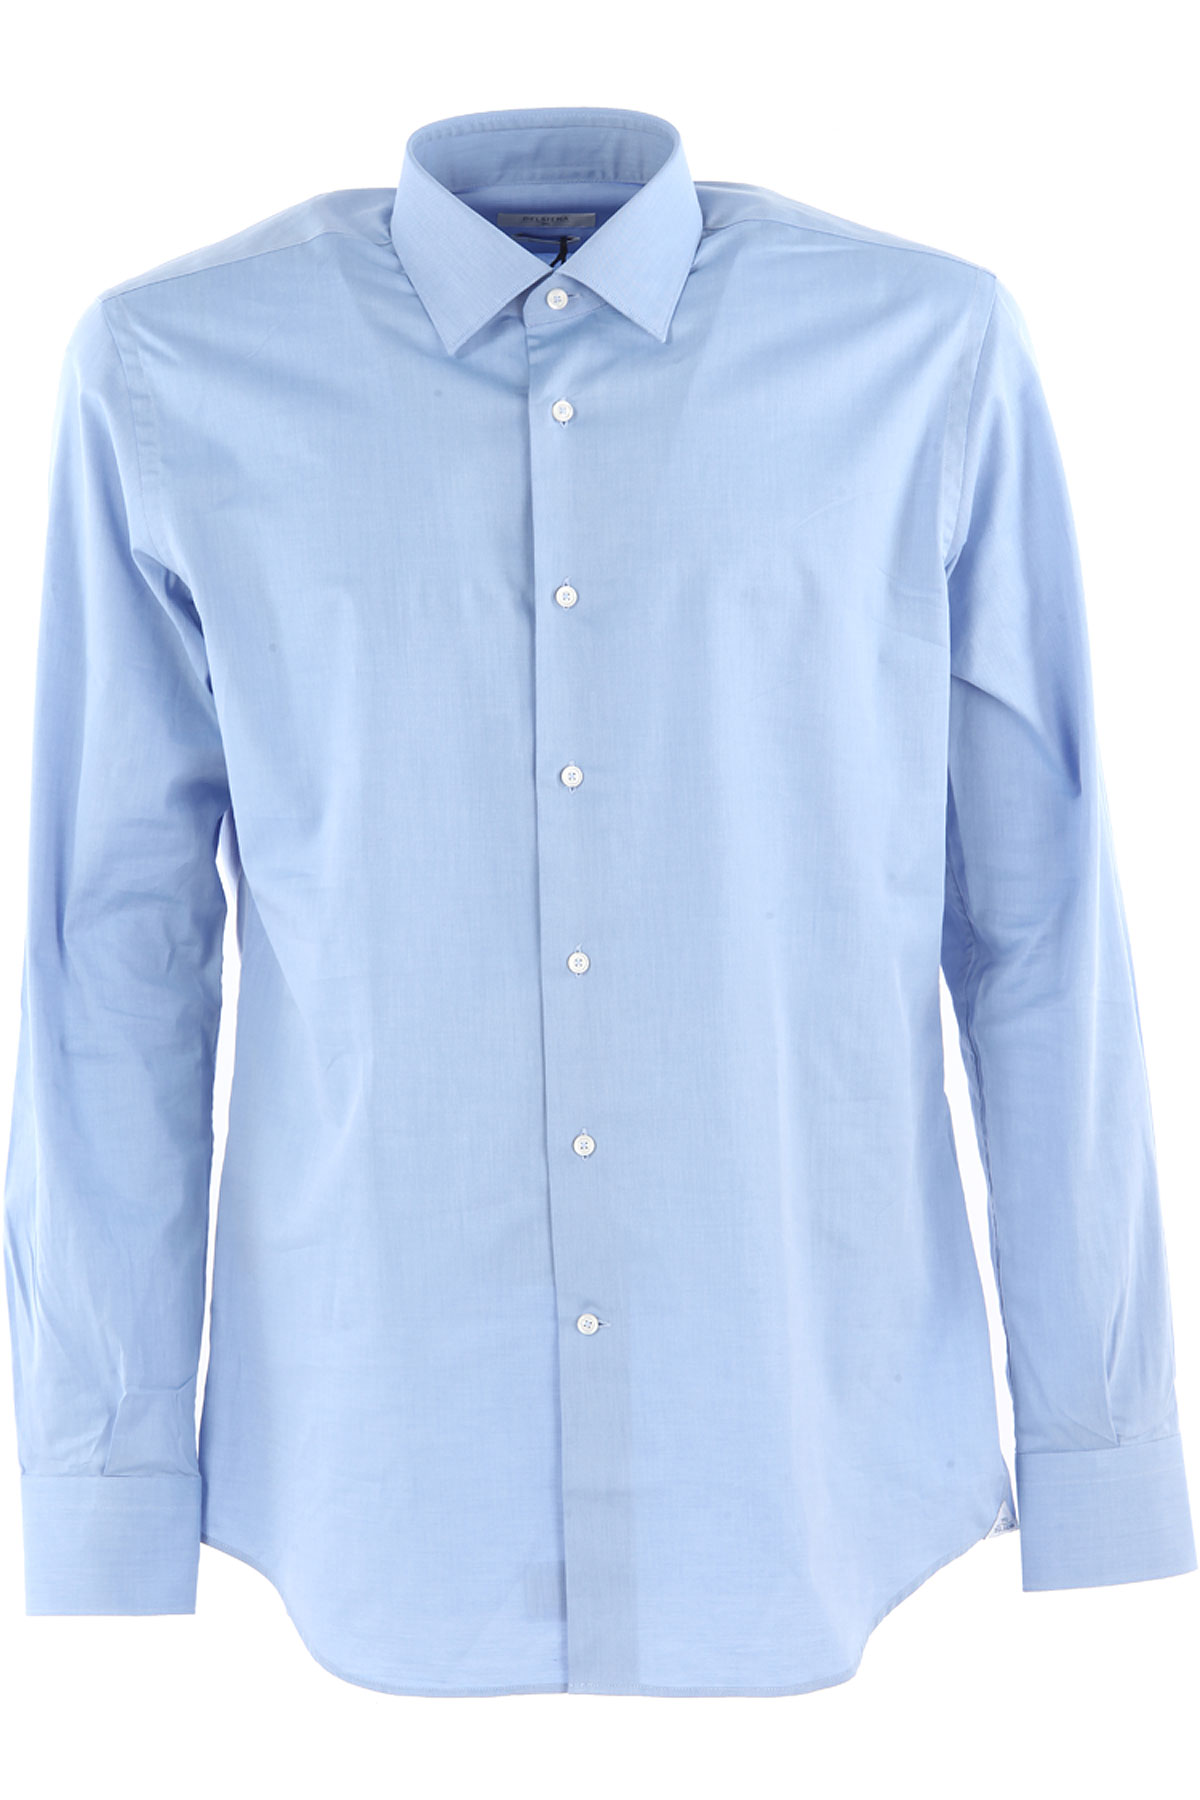 Image of Del Siena Shirt for Men On Sale, Azure, Cotton, 2017, 15.75 16